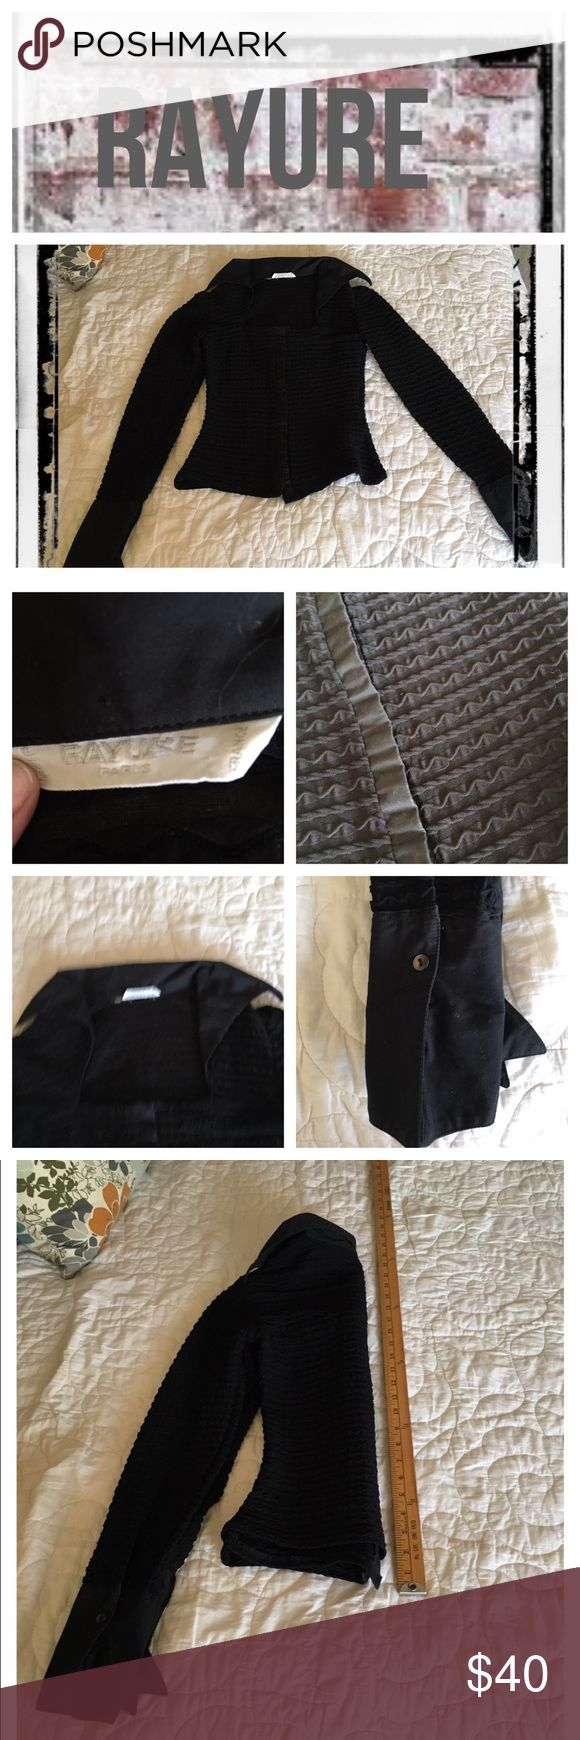 Rayure Paris black tuxedo button down top Gently worn, no flaws. Dry cleaned only.                 REASONABLE OFFERS ONLY- -Smoke and pet free - I try to stay around 75% off MSRP; please keep this in mind when making offers.  -I do not model anything; everything looks different on everyone and I don't wasn't too Jade that. I will provide measurements if needed.  -NO HOLDS, NO TRADES, POSH RULES ONLY! Rayure Paris Tops Button Down Shirts